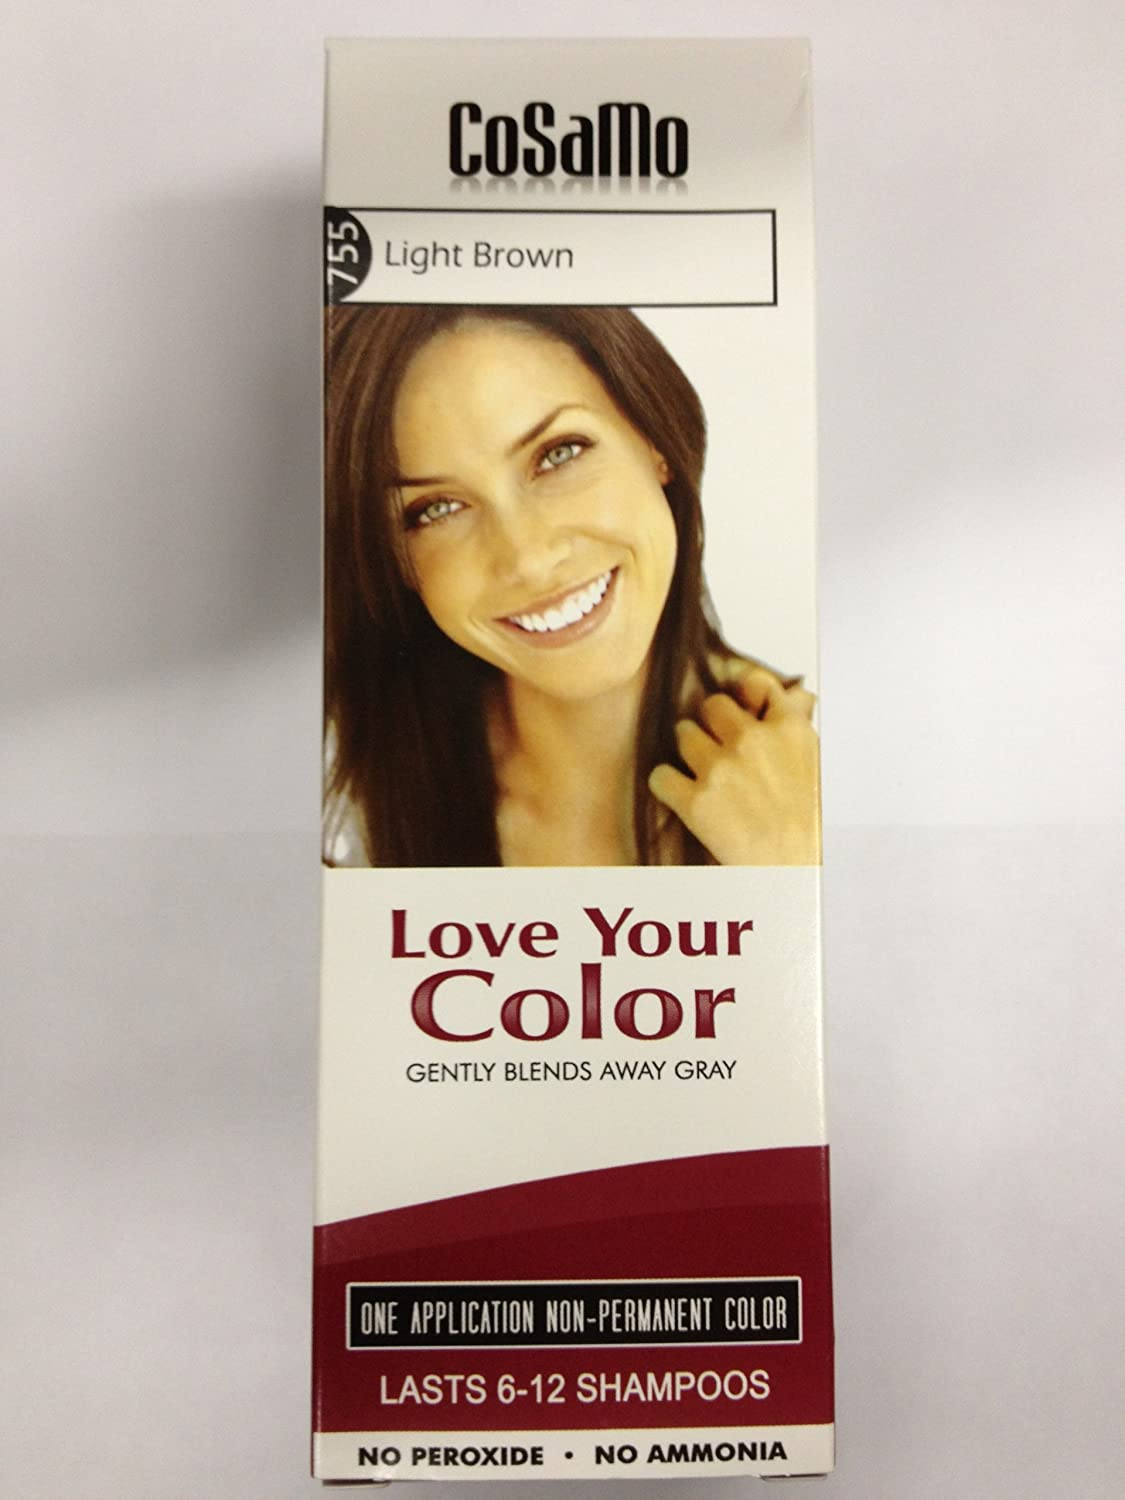 Love Your Color Hair Color Brown Light 3 Oz